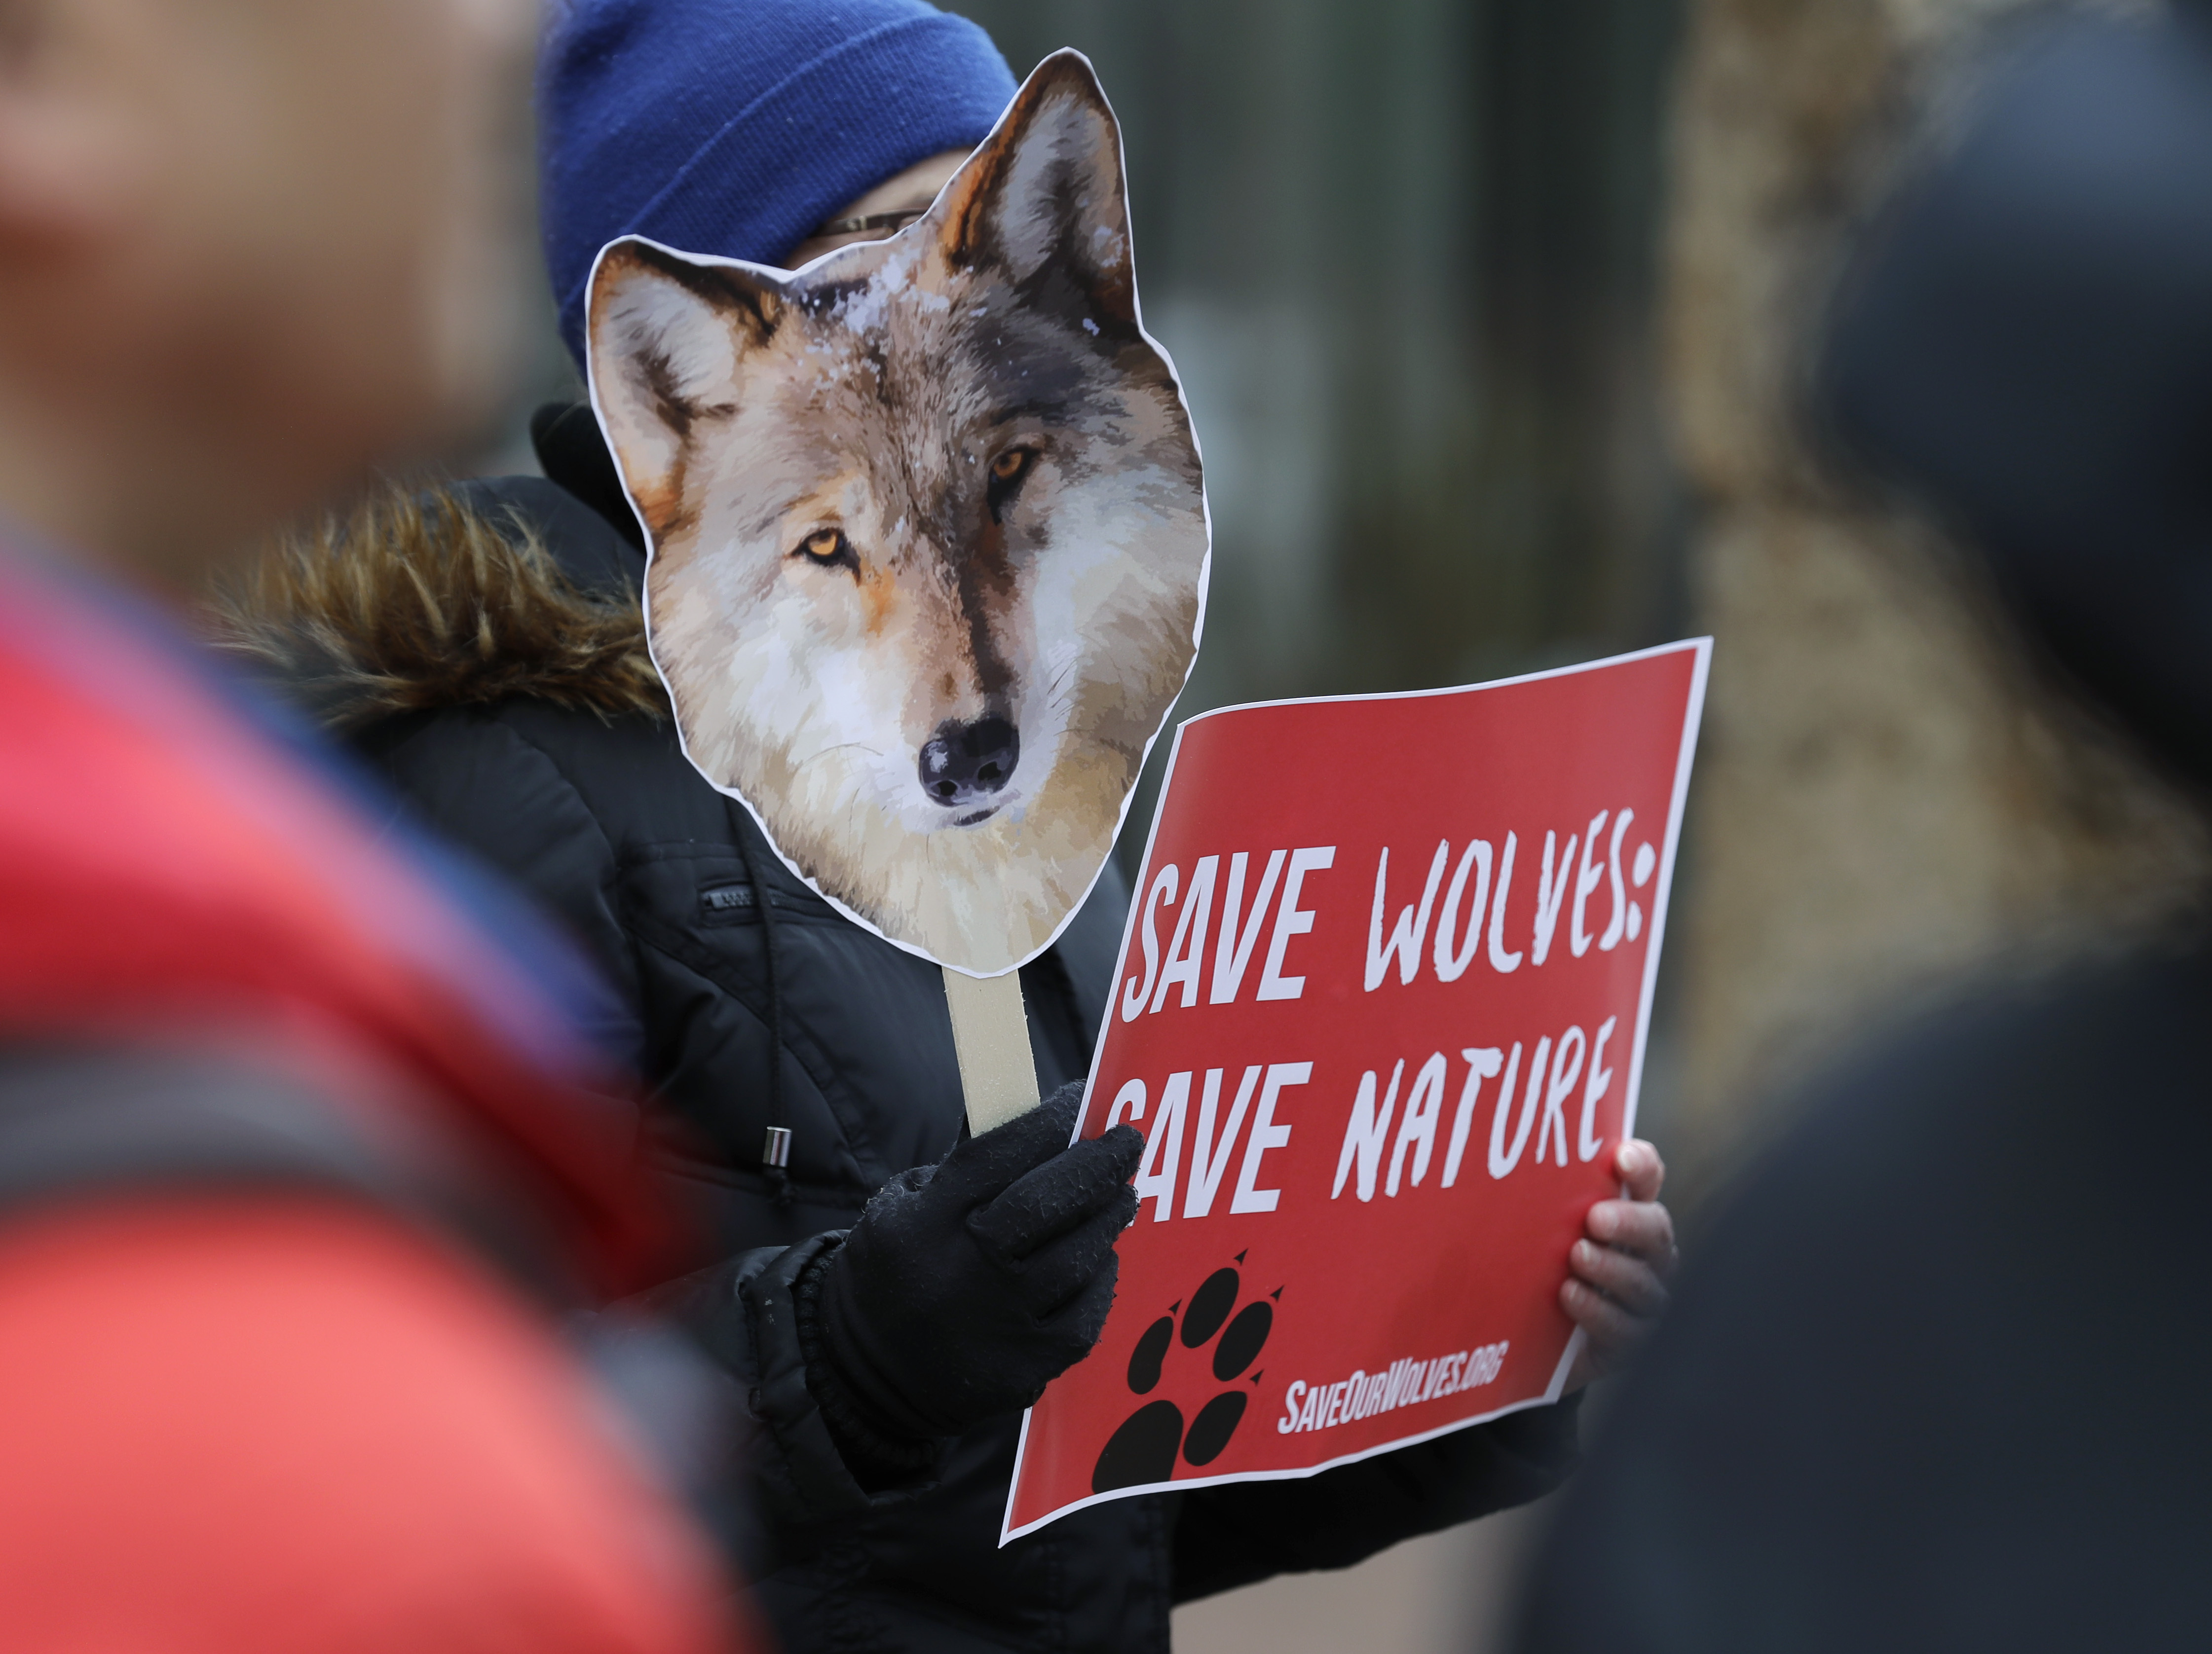 Darlene Baker, of Sammamish, Wash. holds a photo of a wolf as she takes part in a protest, March 7, 2019, at the Henry M. Jackson Federal Building in Seattle against a Trump administration proposal to lift protections for gray wolves across the Lower...